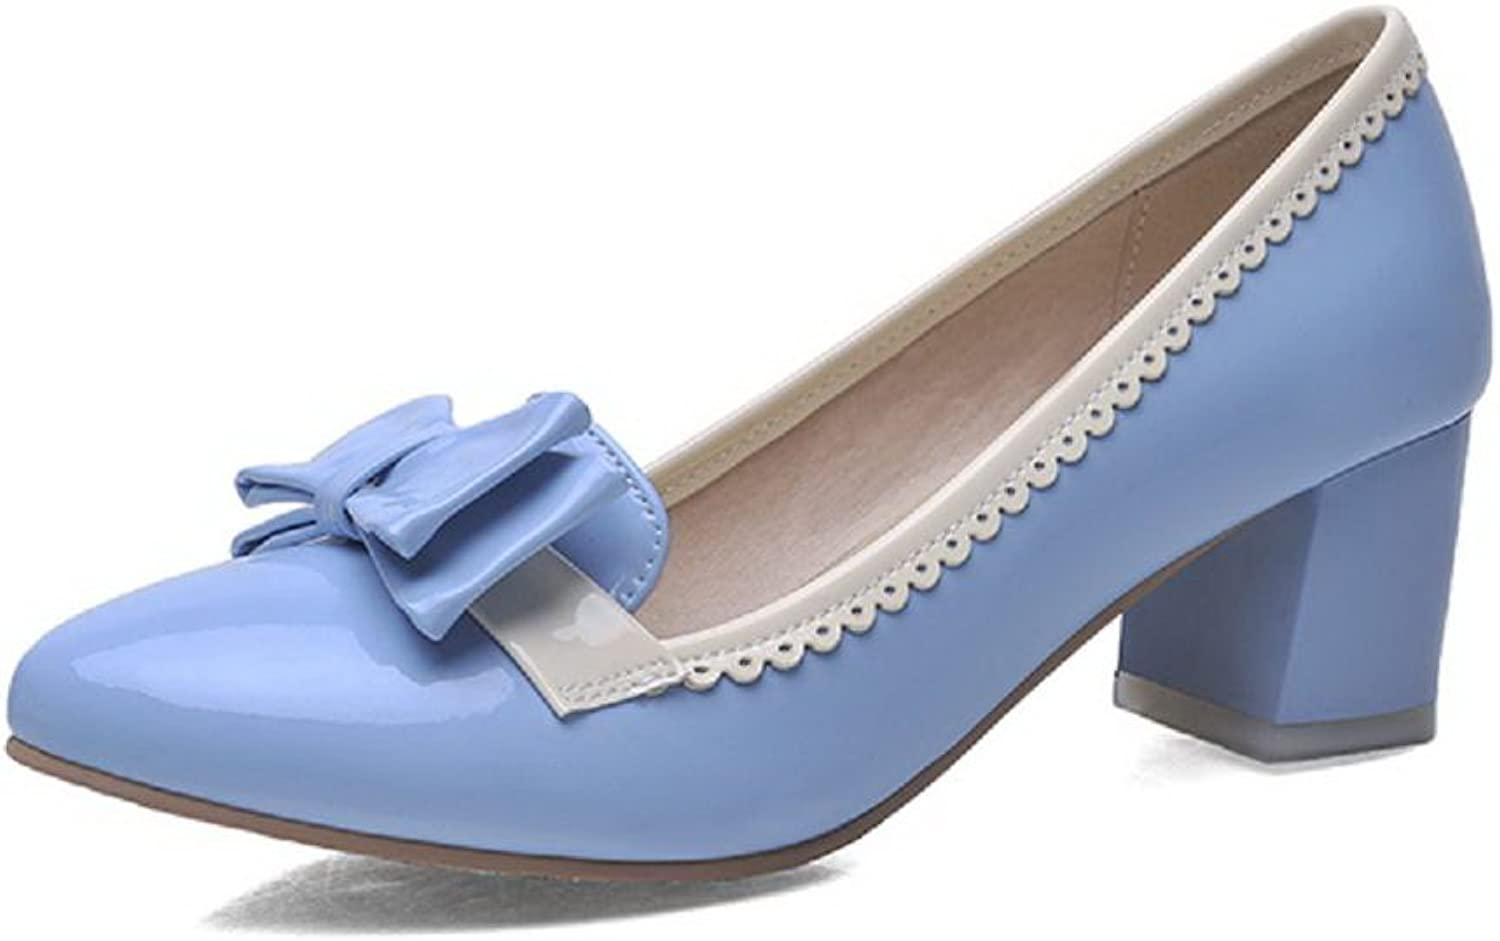 WeenFashion Women's Pull On Kitten Heels Pu Assorted color Pointed Closed Toe Pumps-shoes